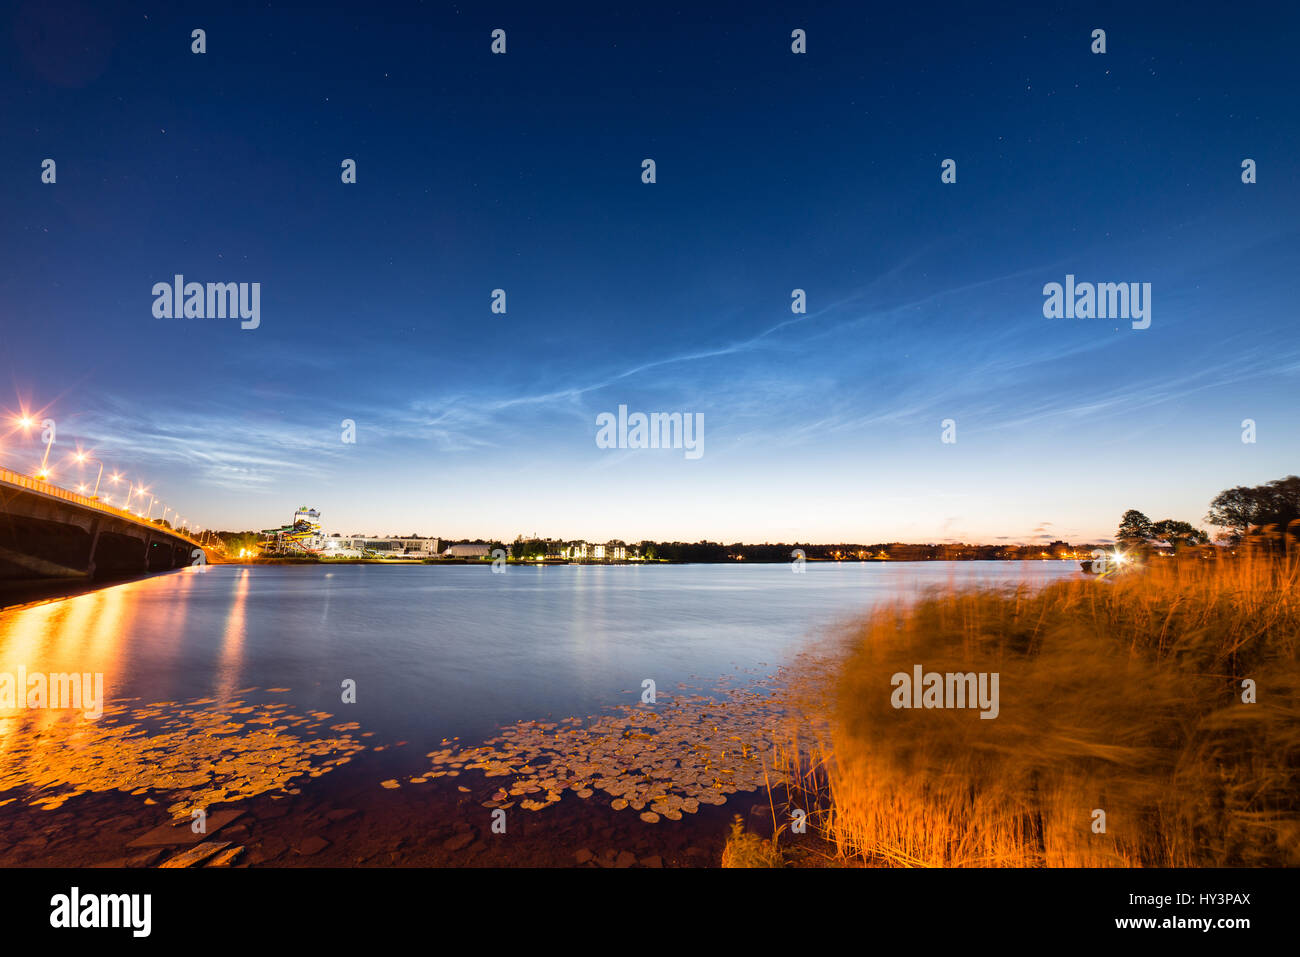 Beautiful sky phenomenon noctilucent clouds over beach in Latvia - Stock Image